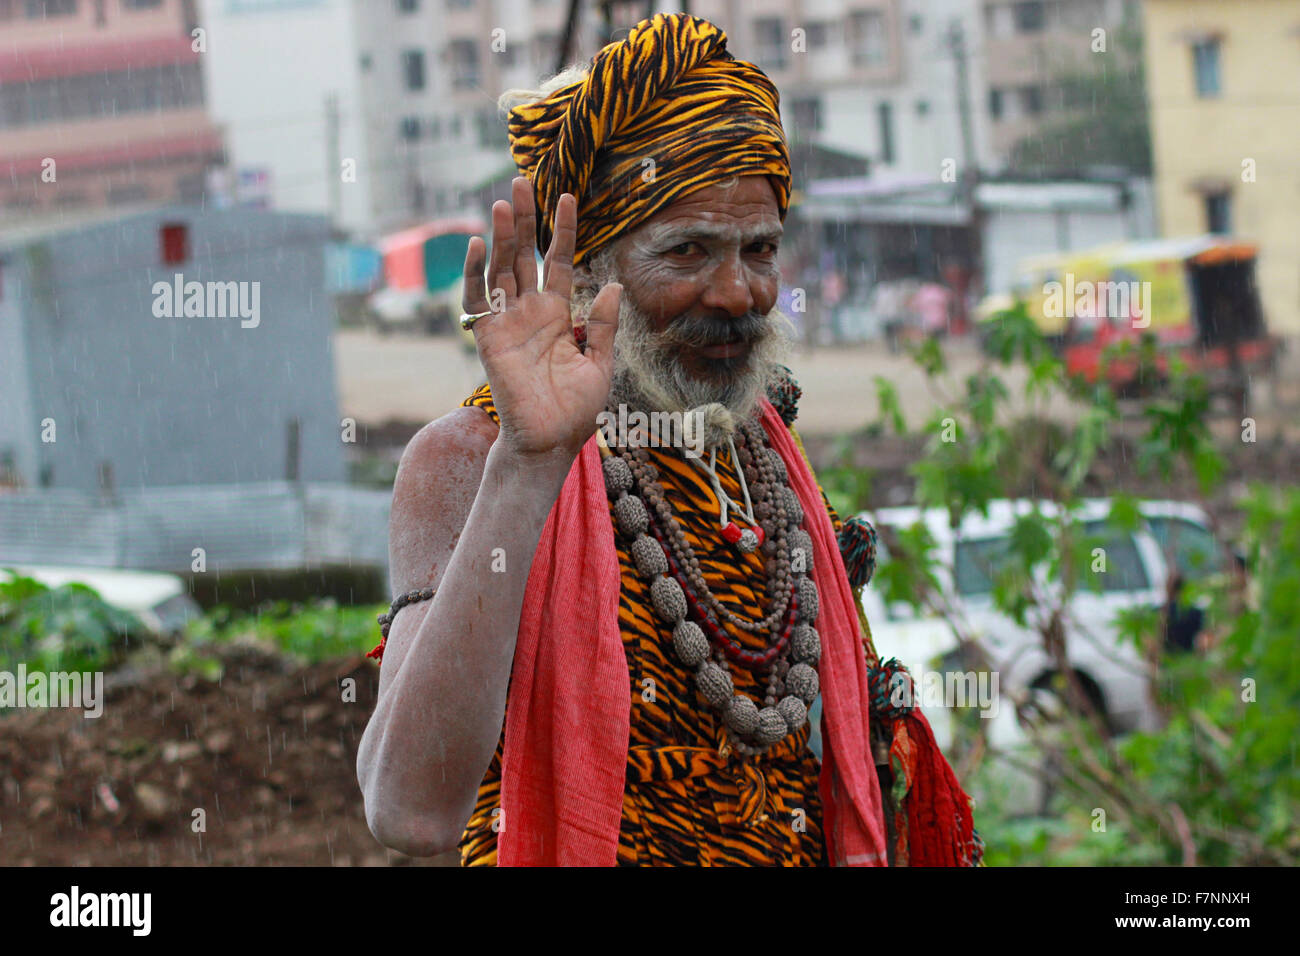 Sadhu offering blessings Kumbh Mela, Nasik, Maharashtra, India - Stock Image